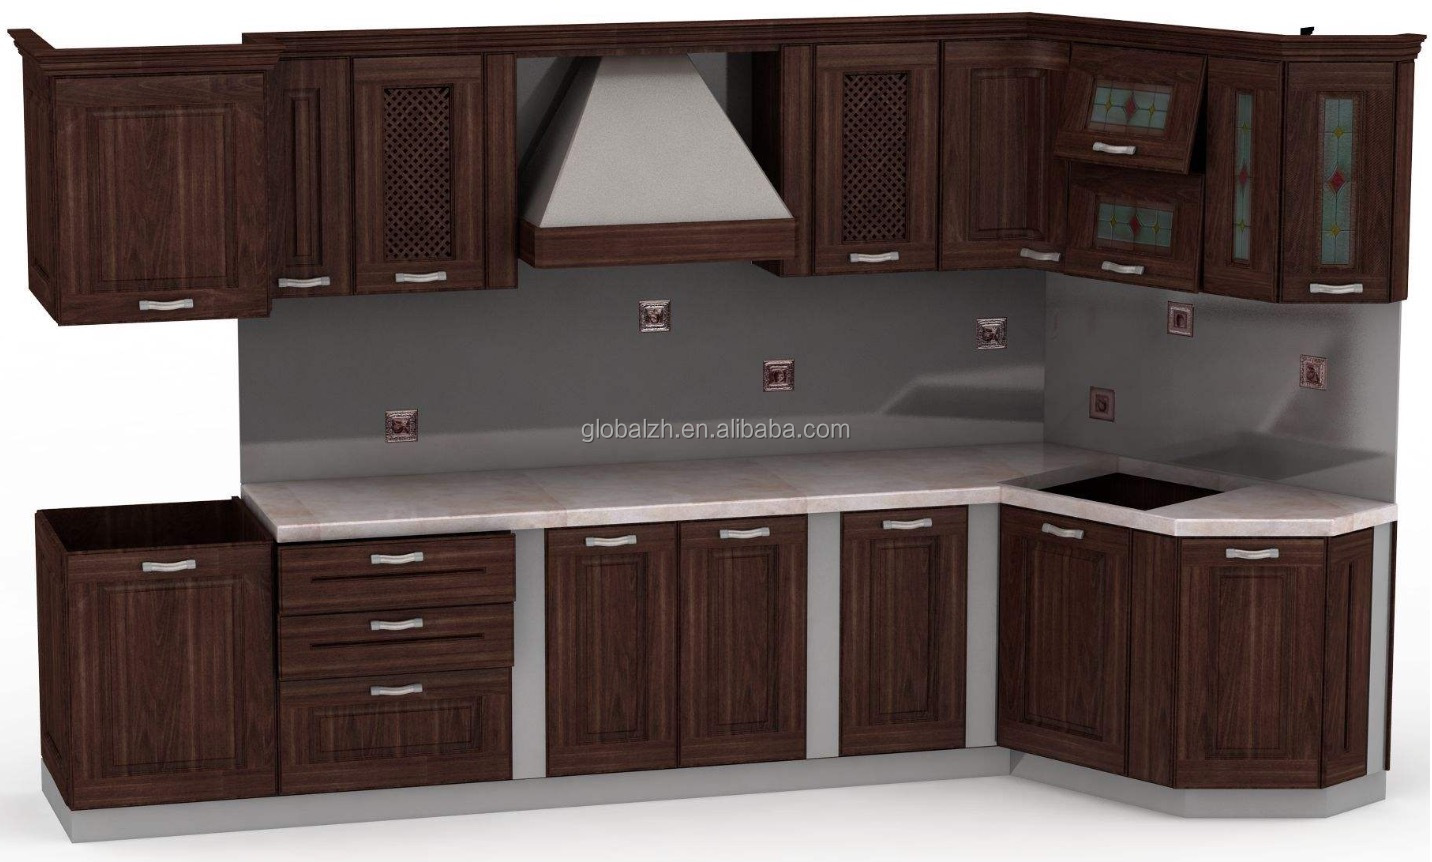 Used Kitchen Cabinets For Sale Craigslist Free Used Kitchen Cabinets Craigslist Made In China Kitchen